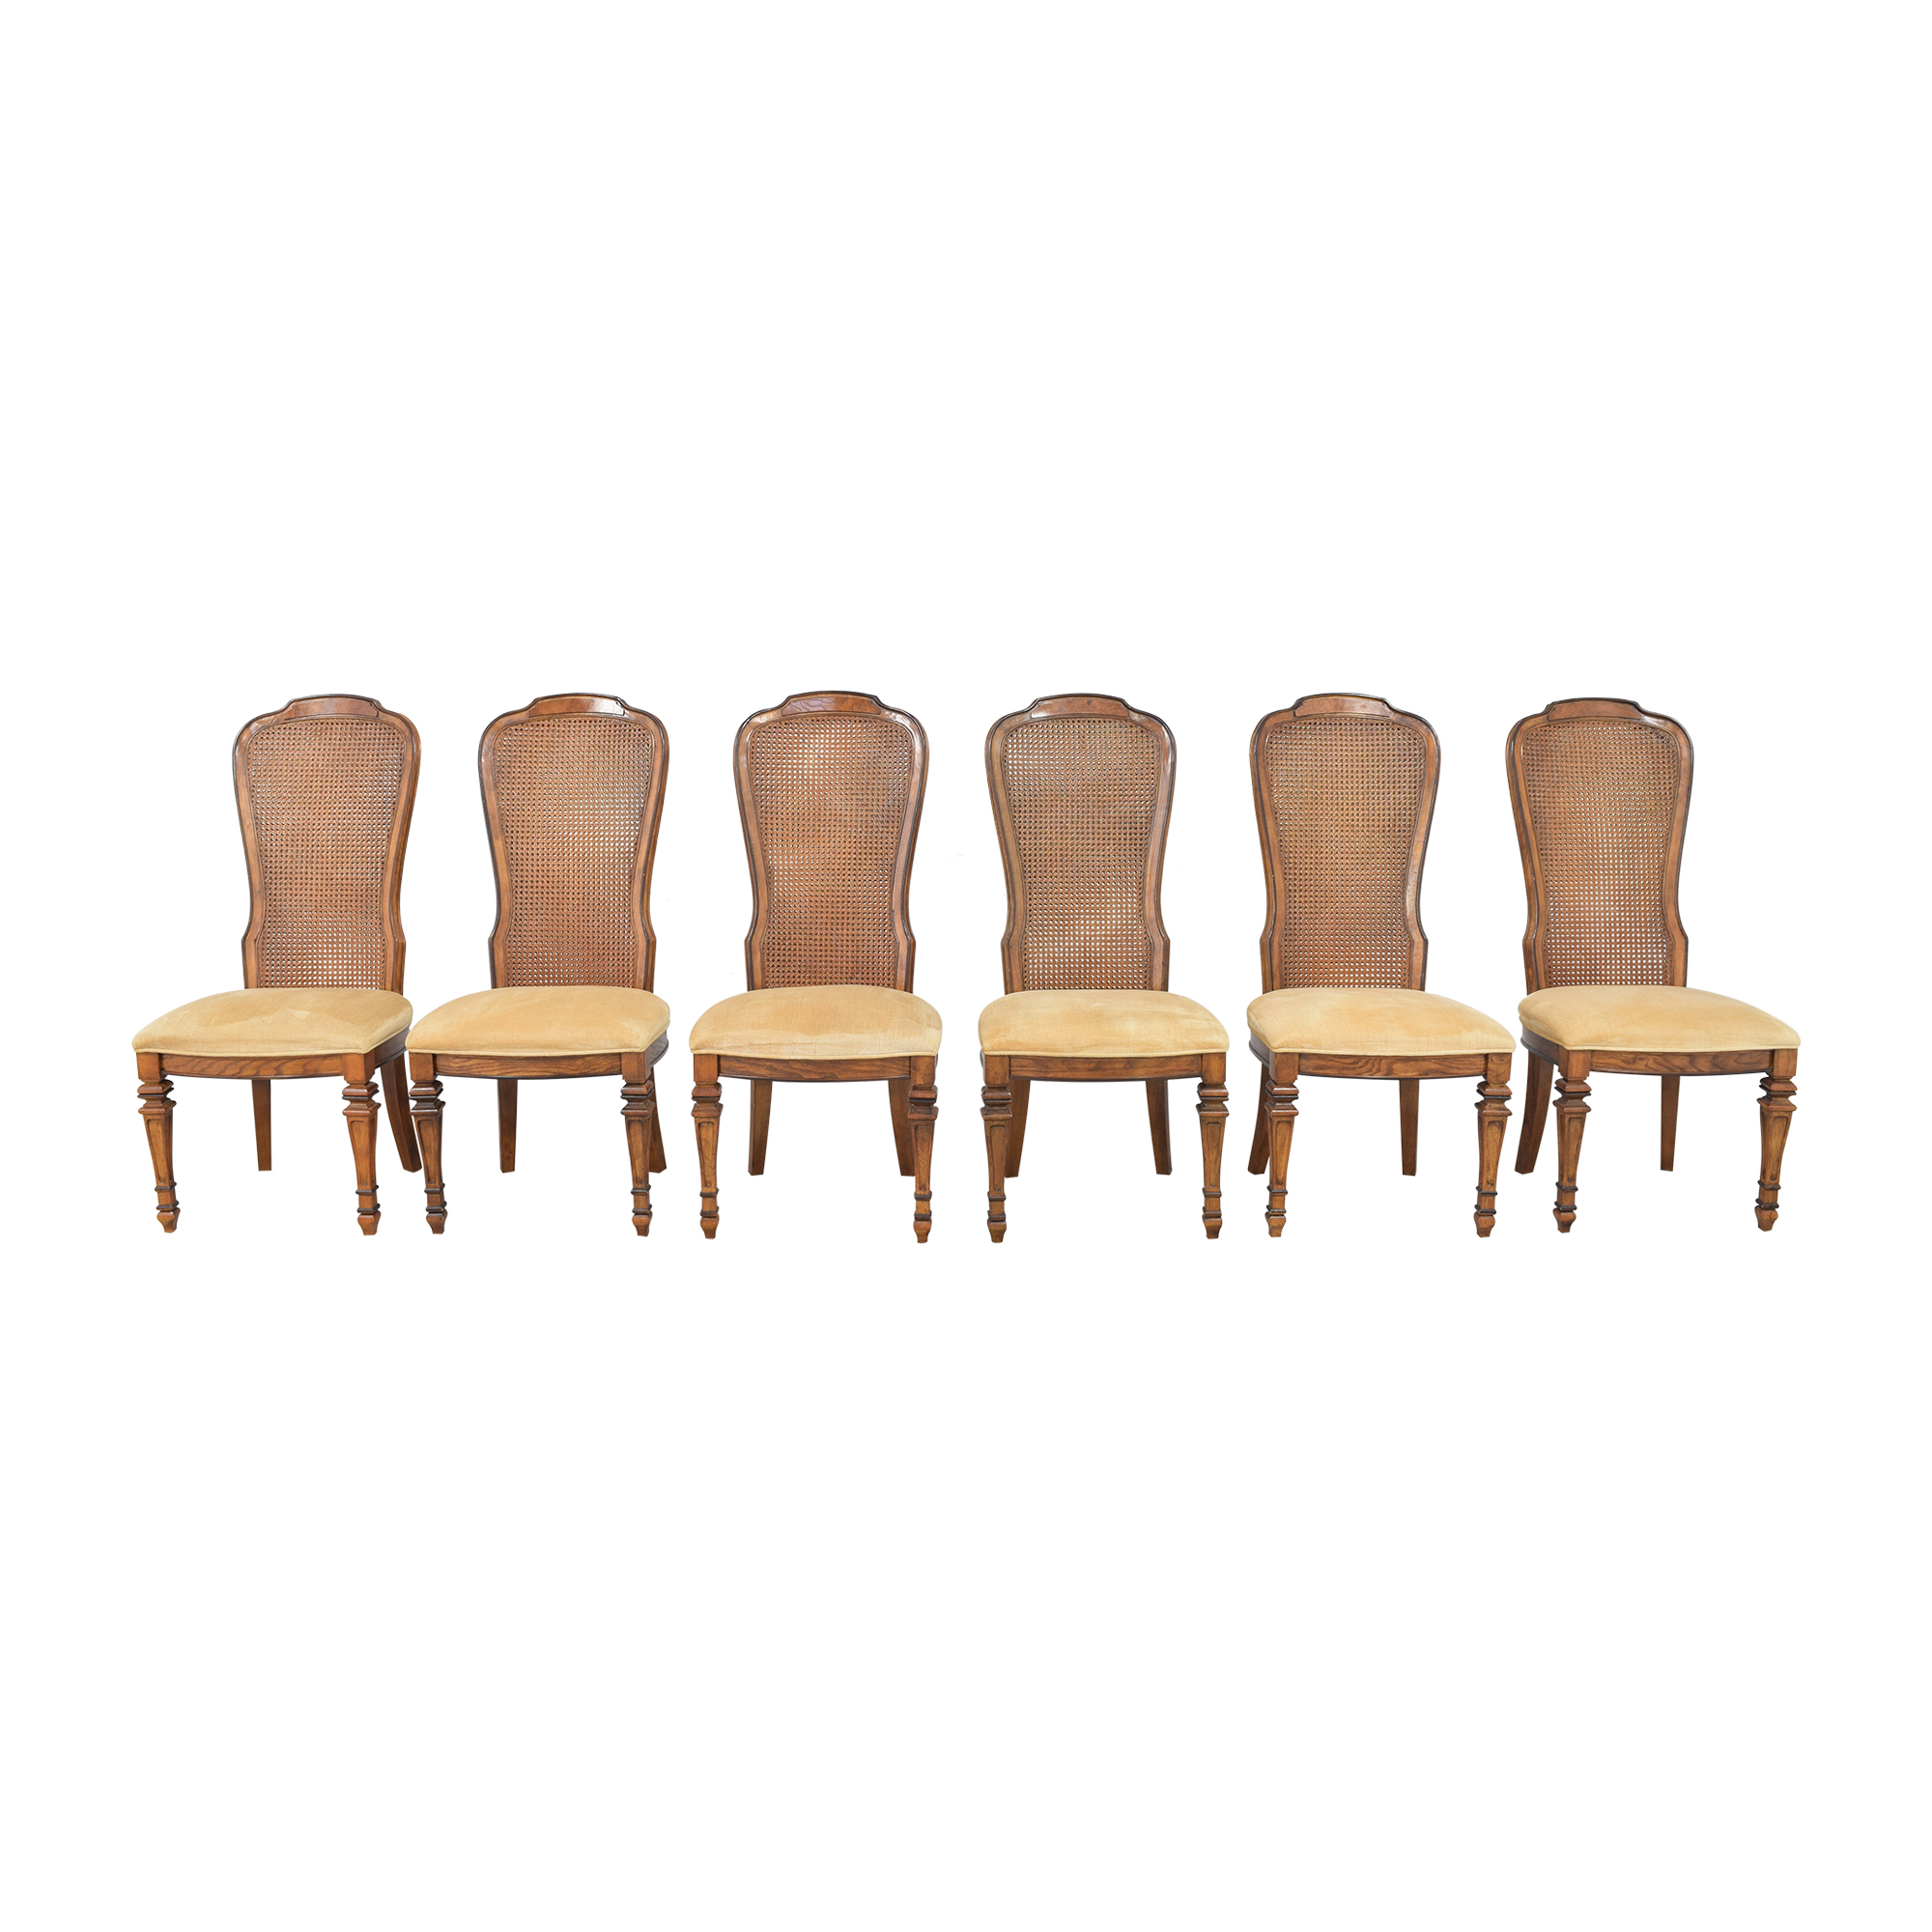 Bernhardt Bernhardt Upholstered Dining Chairs